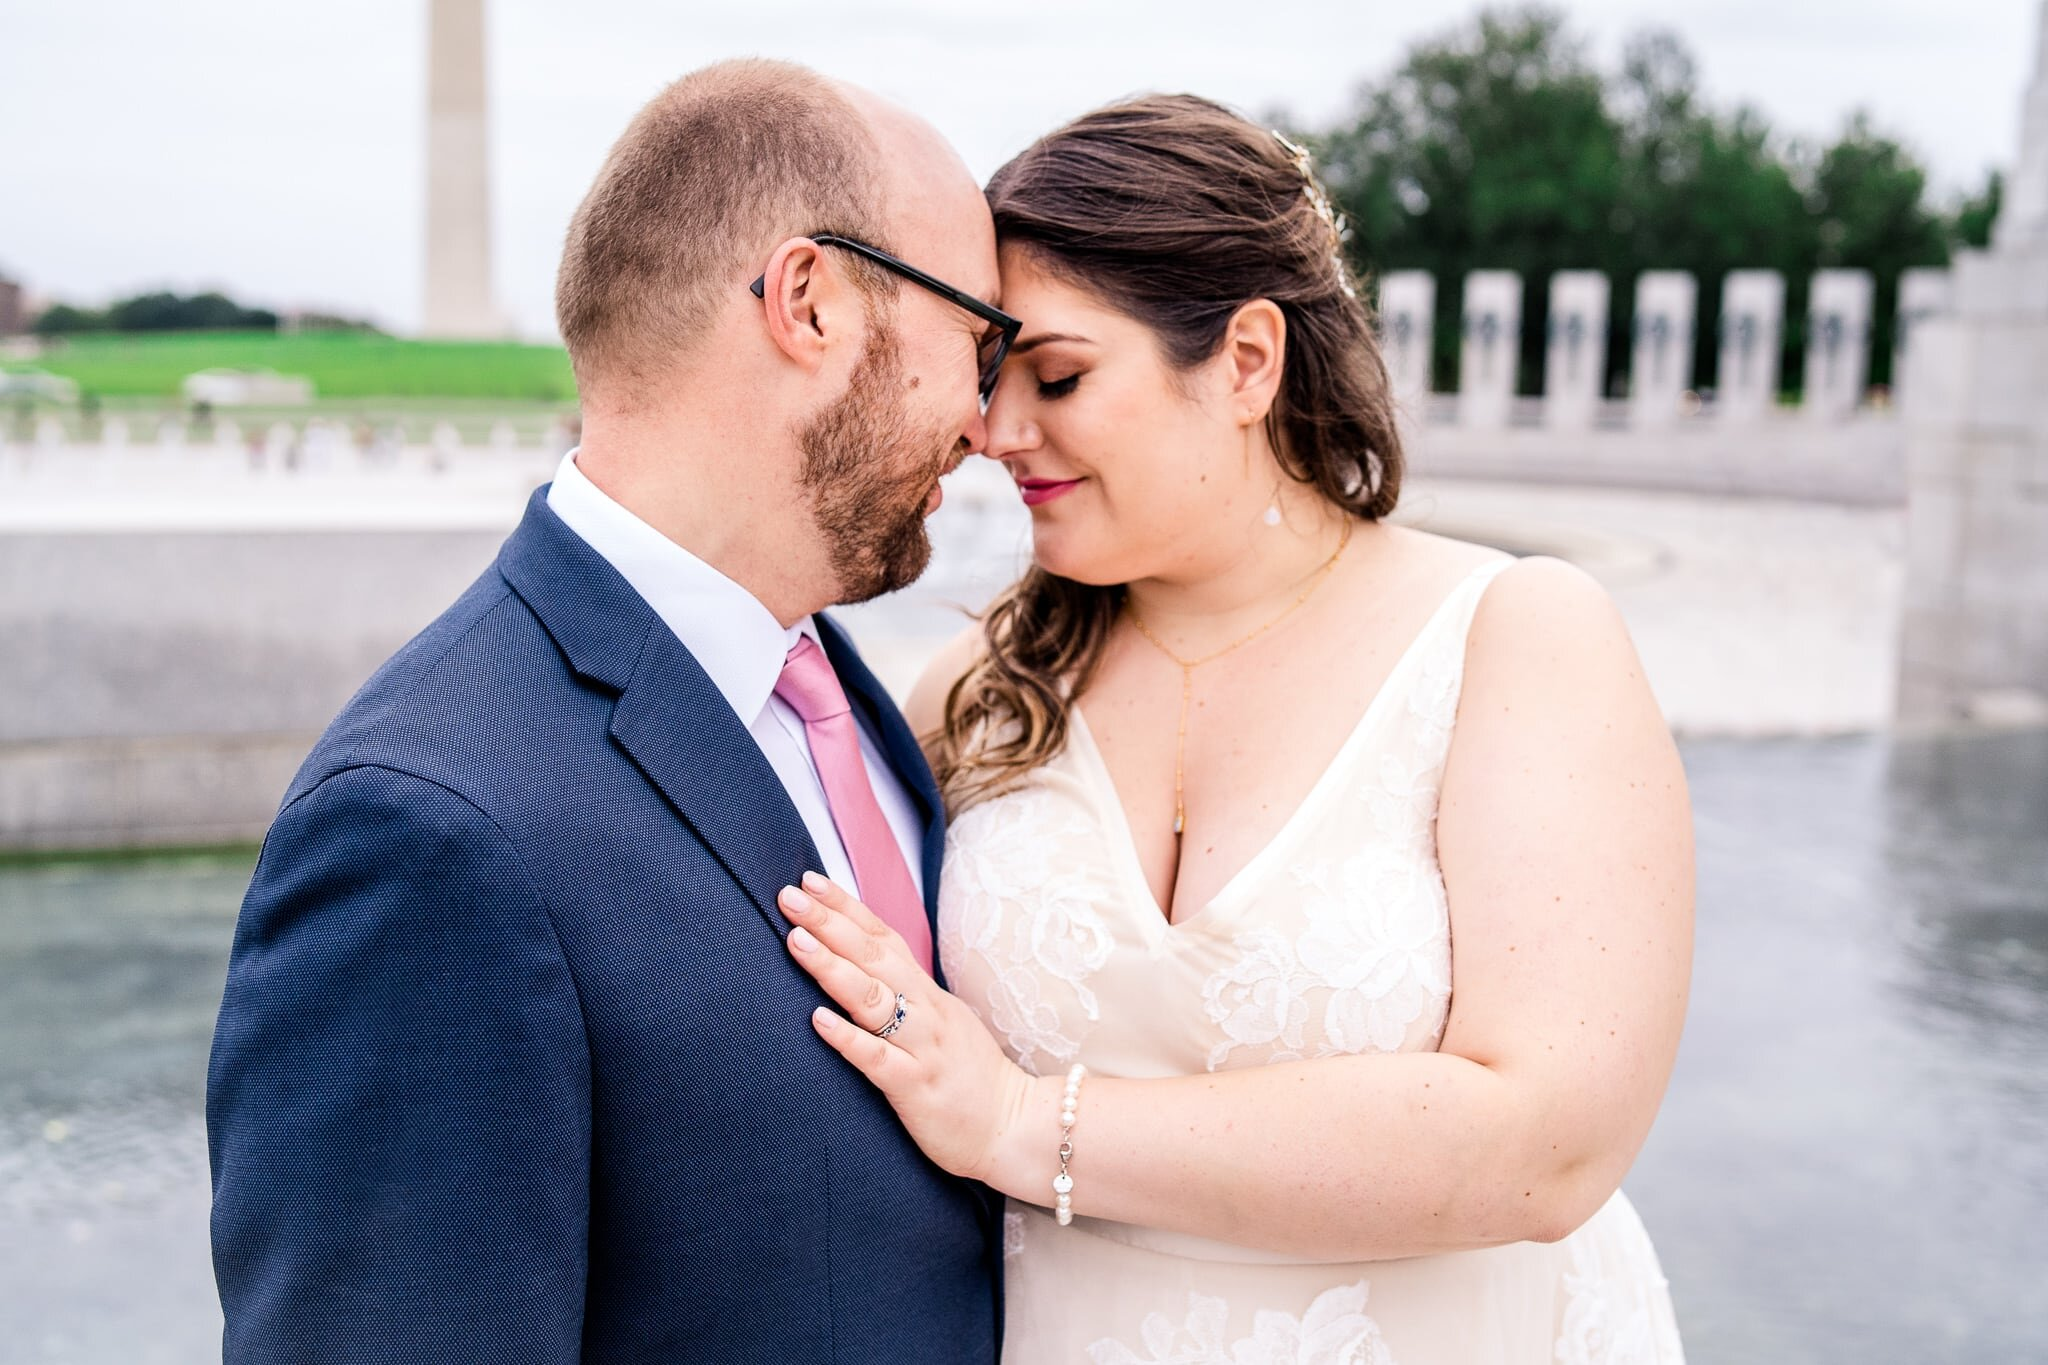 A bride and groom stand together with foreheads together and her hand on his chest on their fall wedding day at the WWII Memorial in front of the Washington Monument in Washington, DC